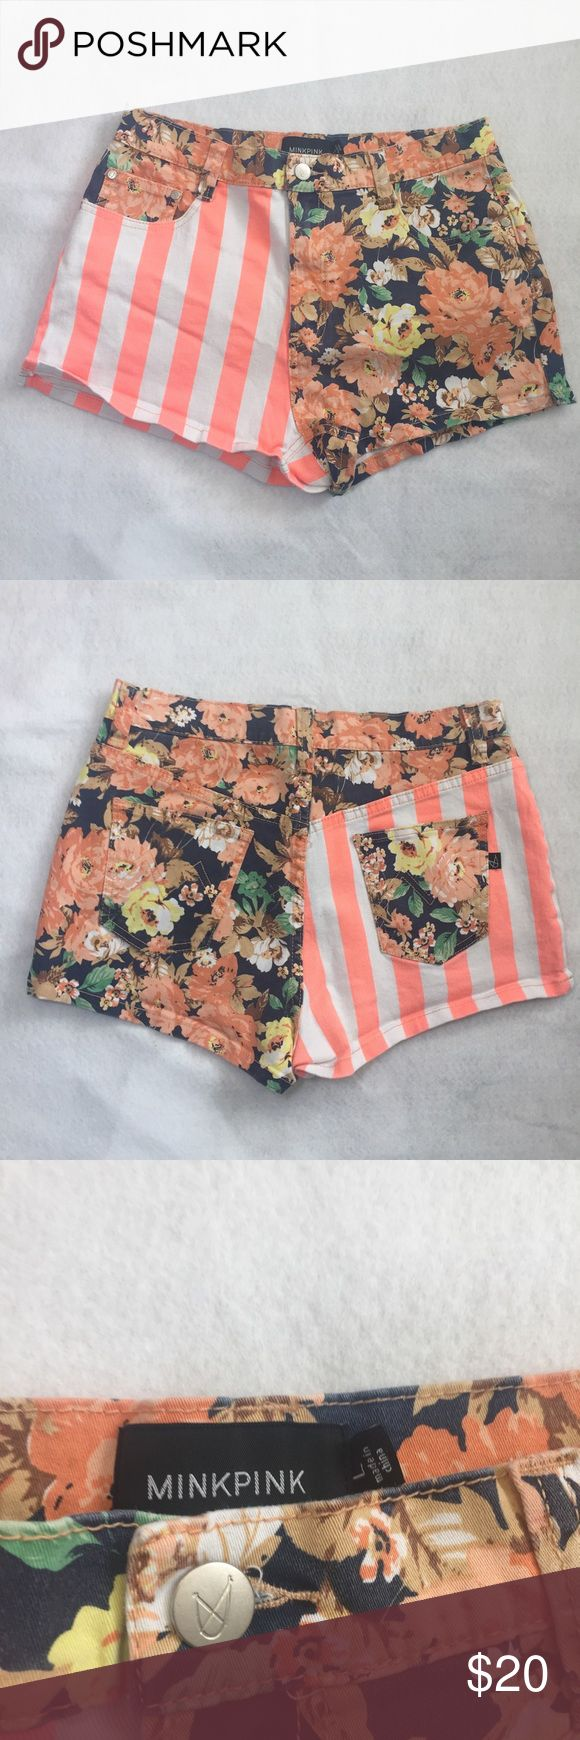 MINKPINK Floral striped denim Women's Shorts Large The PERFECT shorts to welcome Spring! Floral shorts with stripes. The colors are so pretty but not too loud. Denim shorts are a size large. In good used condition. No tears, holes or stains. MINKPINK Shorts Jean Shorts